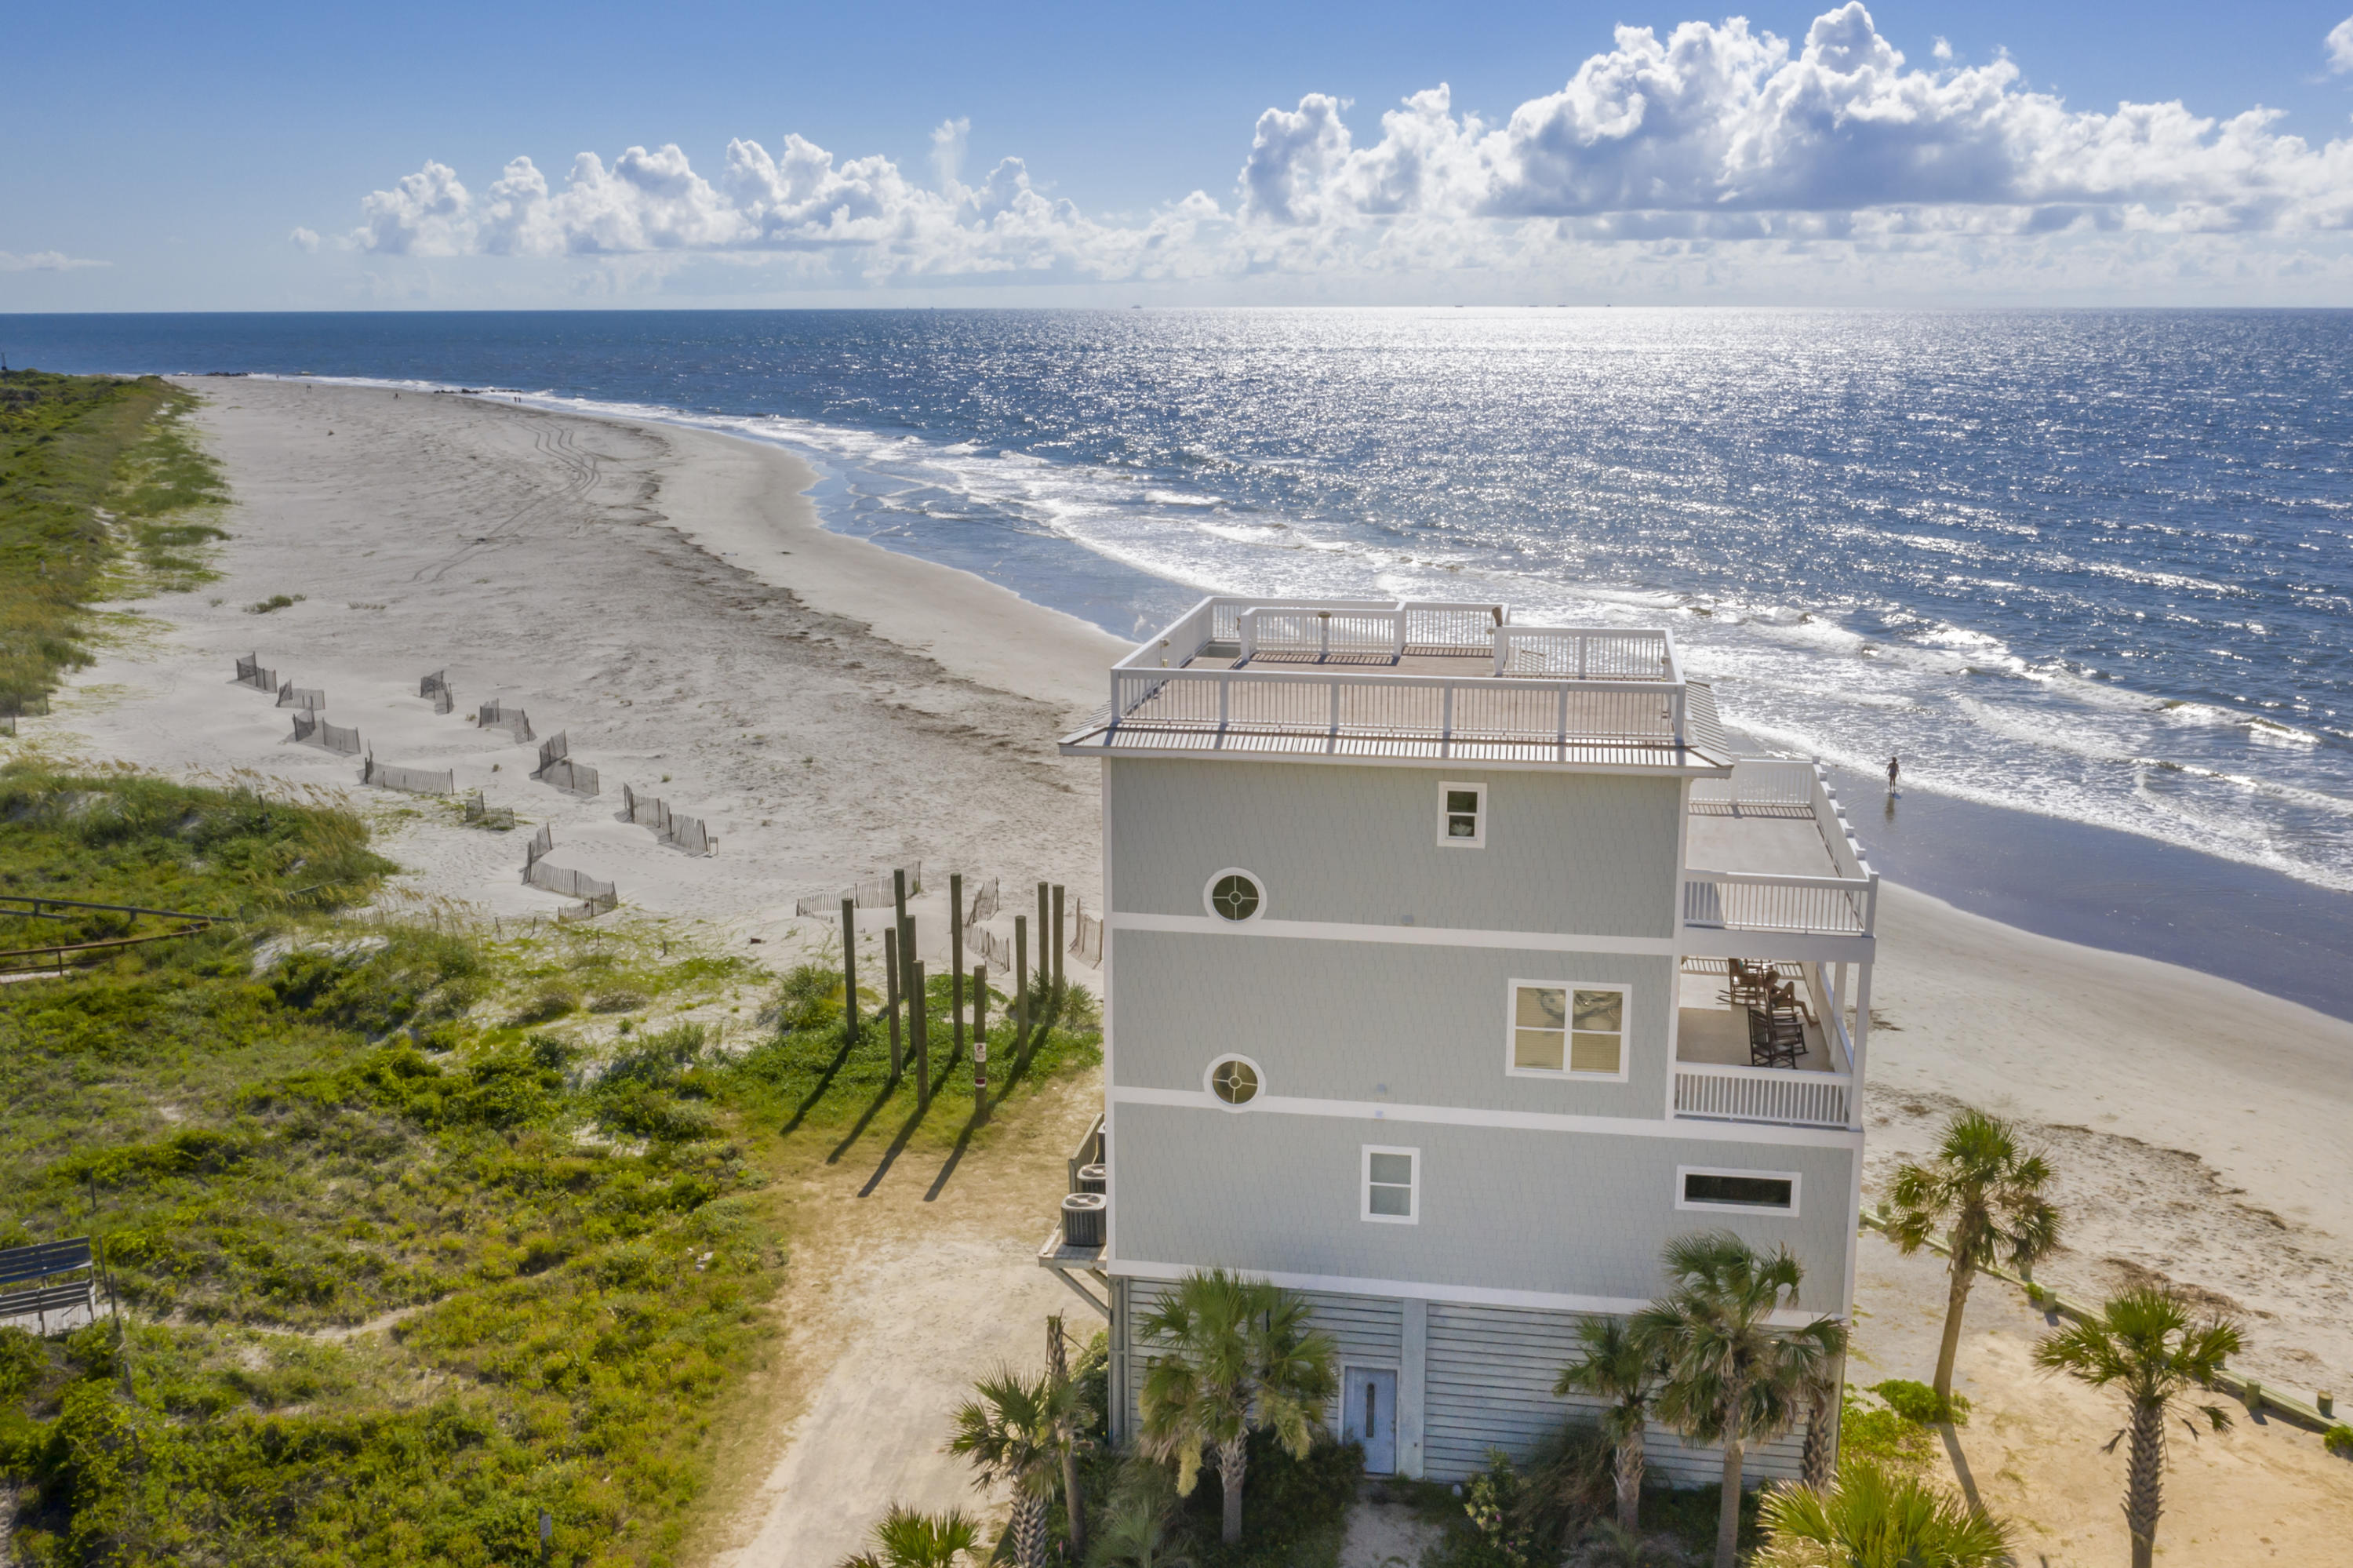 4 Summer Place NULL Folly Beach $1,425,000.00